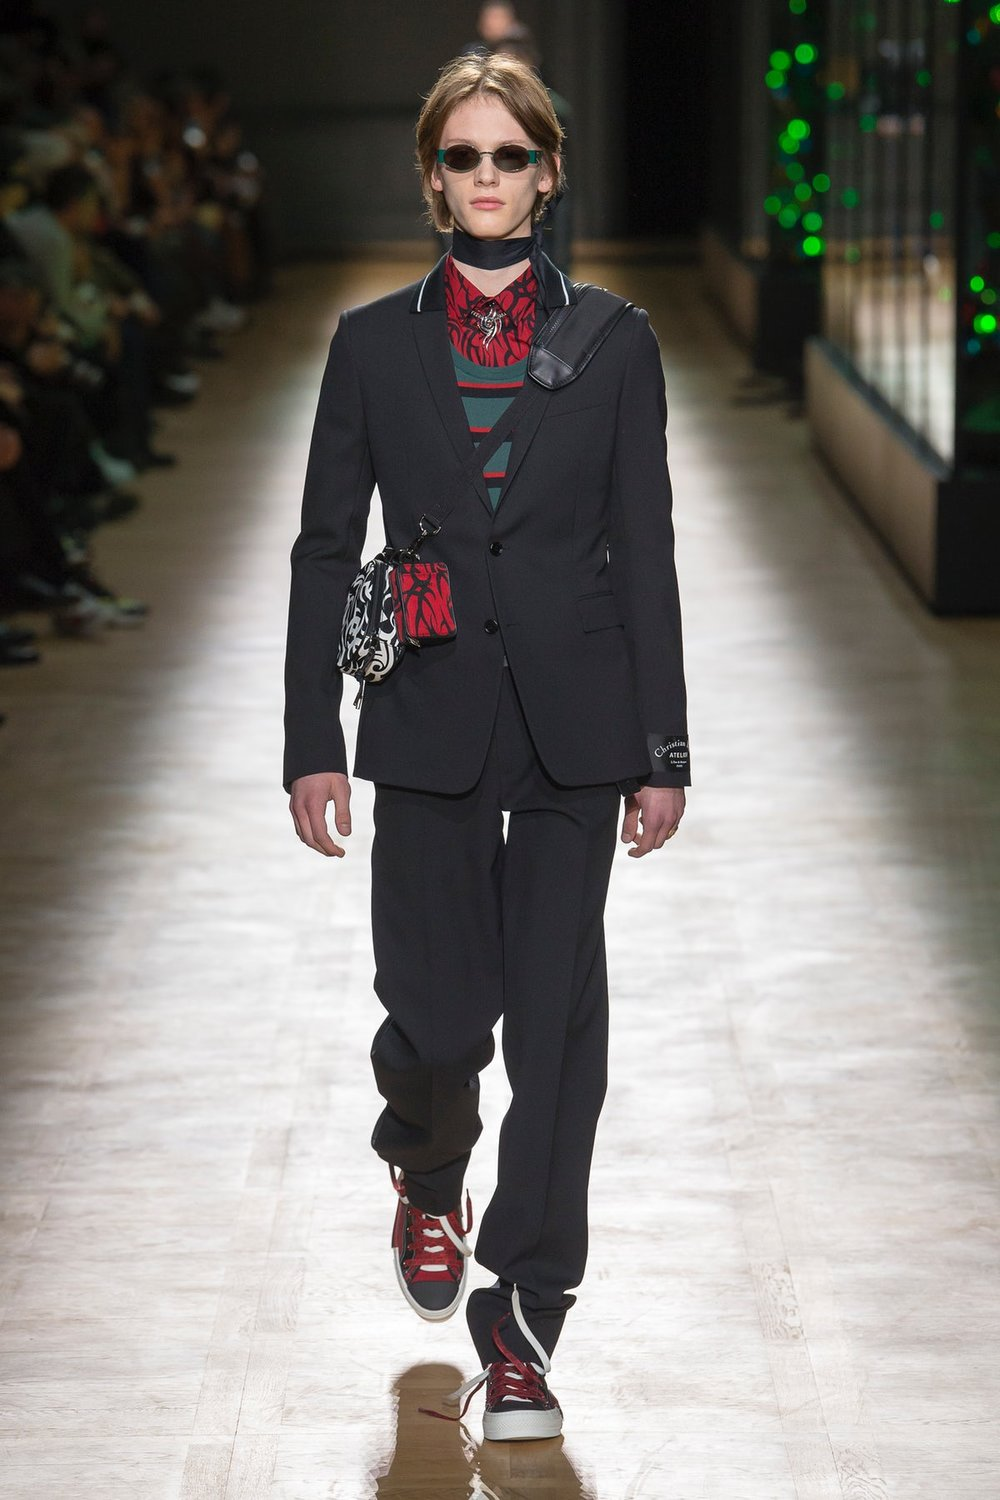 dior_homme_look_15_menswear_autumn_2018.jpeg